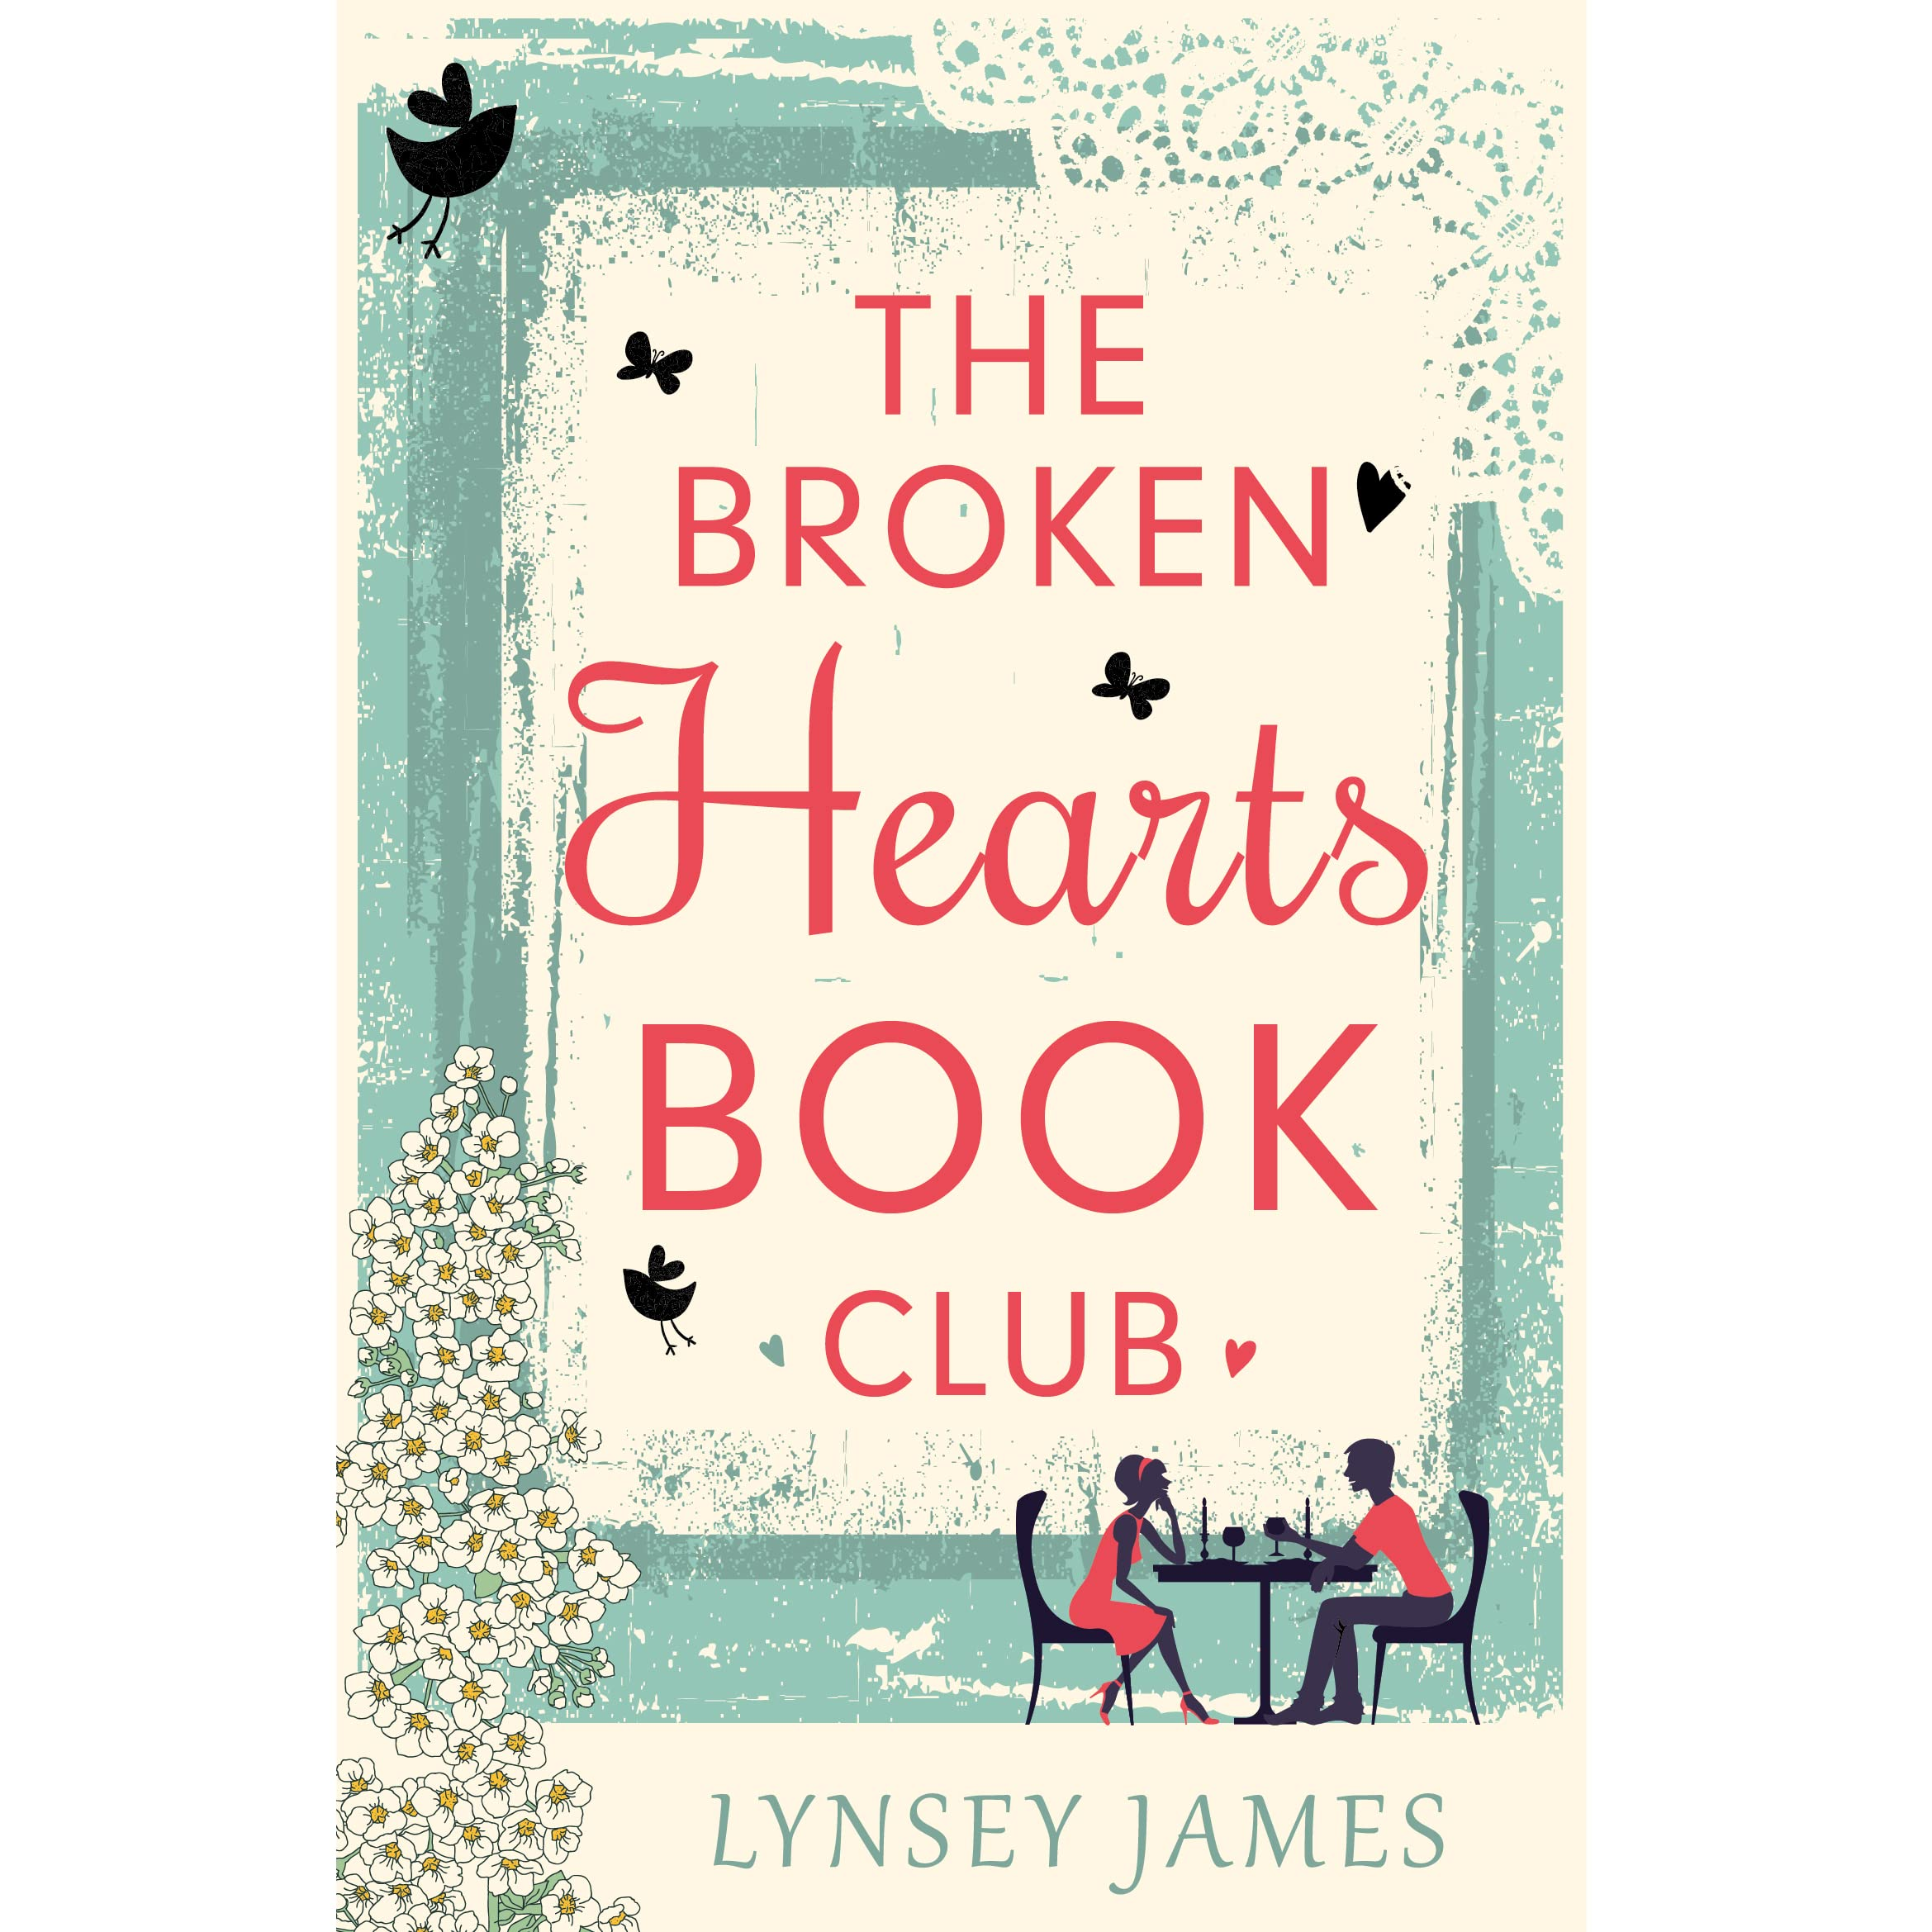 Miss lonely hearts goodreads giveaways